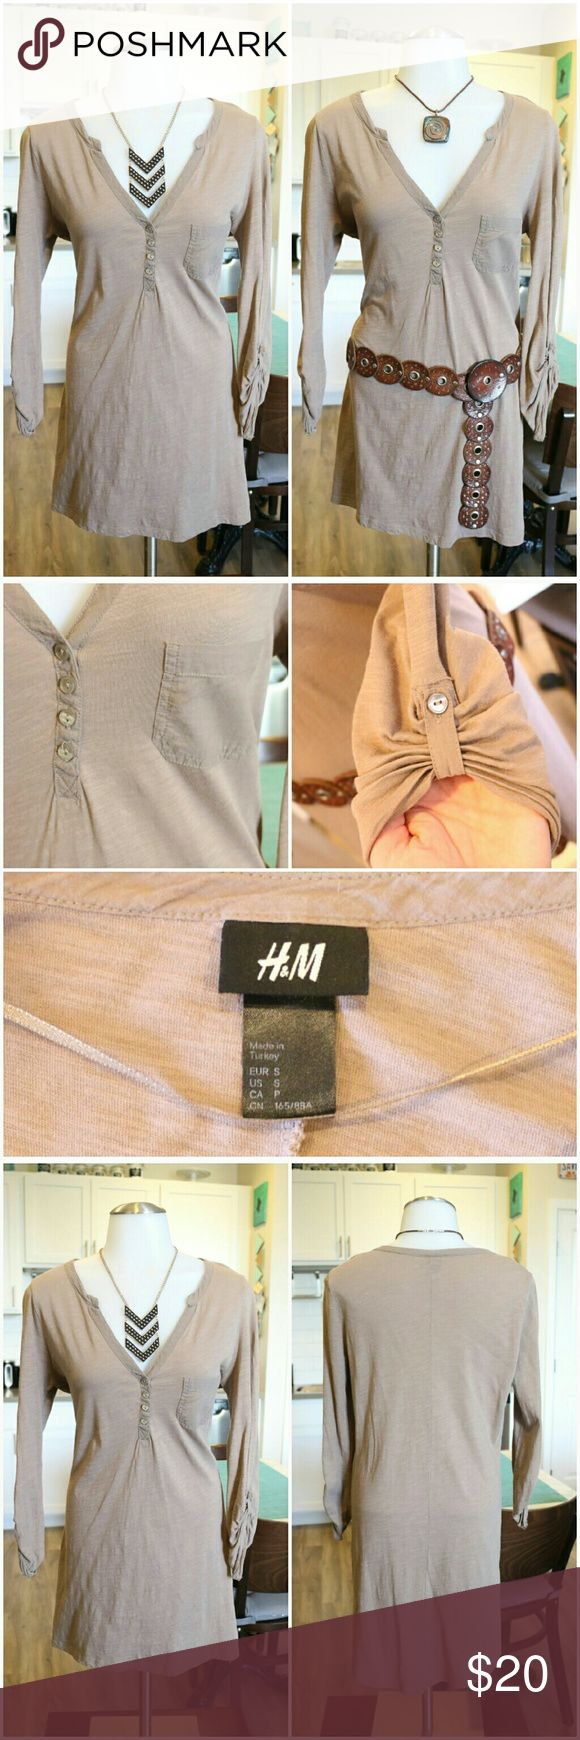 H&M Tshirt Dress Cute and comfy light brown tshirt dress. style it with leggings and a cute belt or just add a chunky necklace to complete your look. Material: 100% Cotton  Bundle and save 10% Free gift with purchase over $20 H&M Dresses Midi